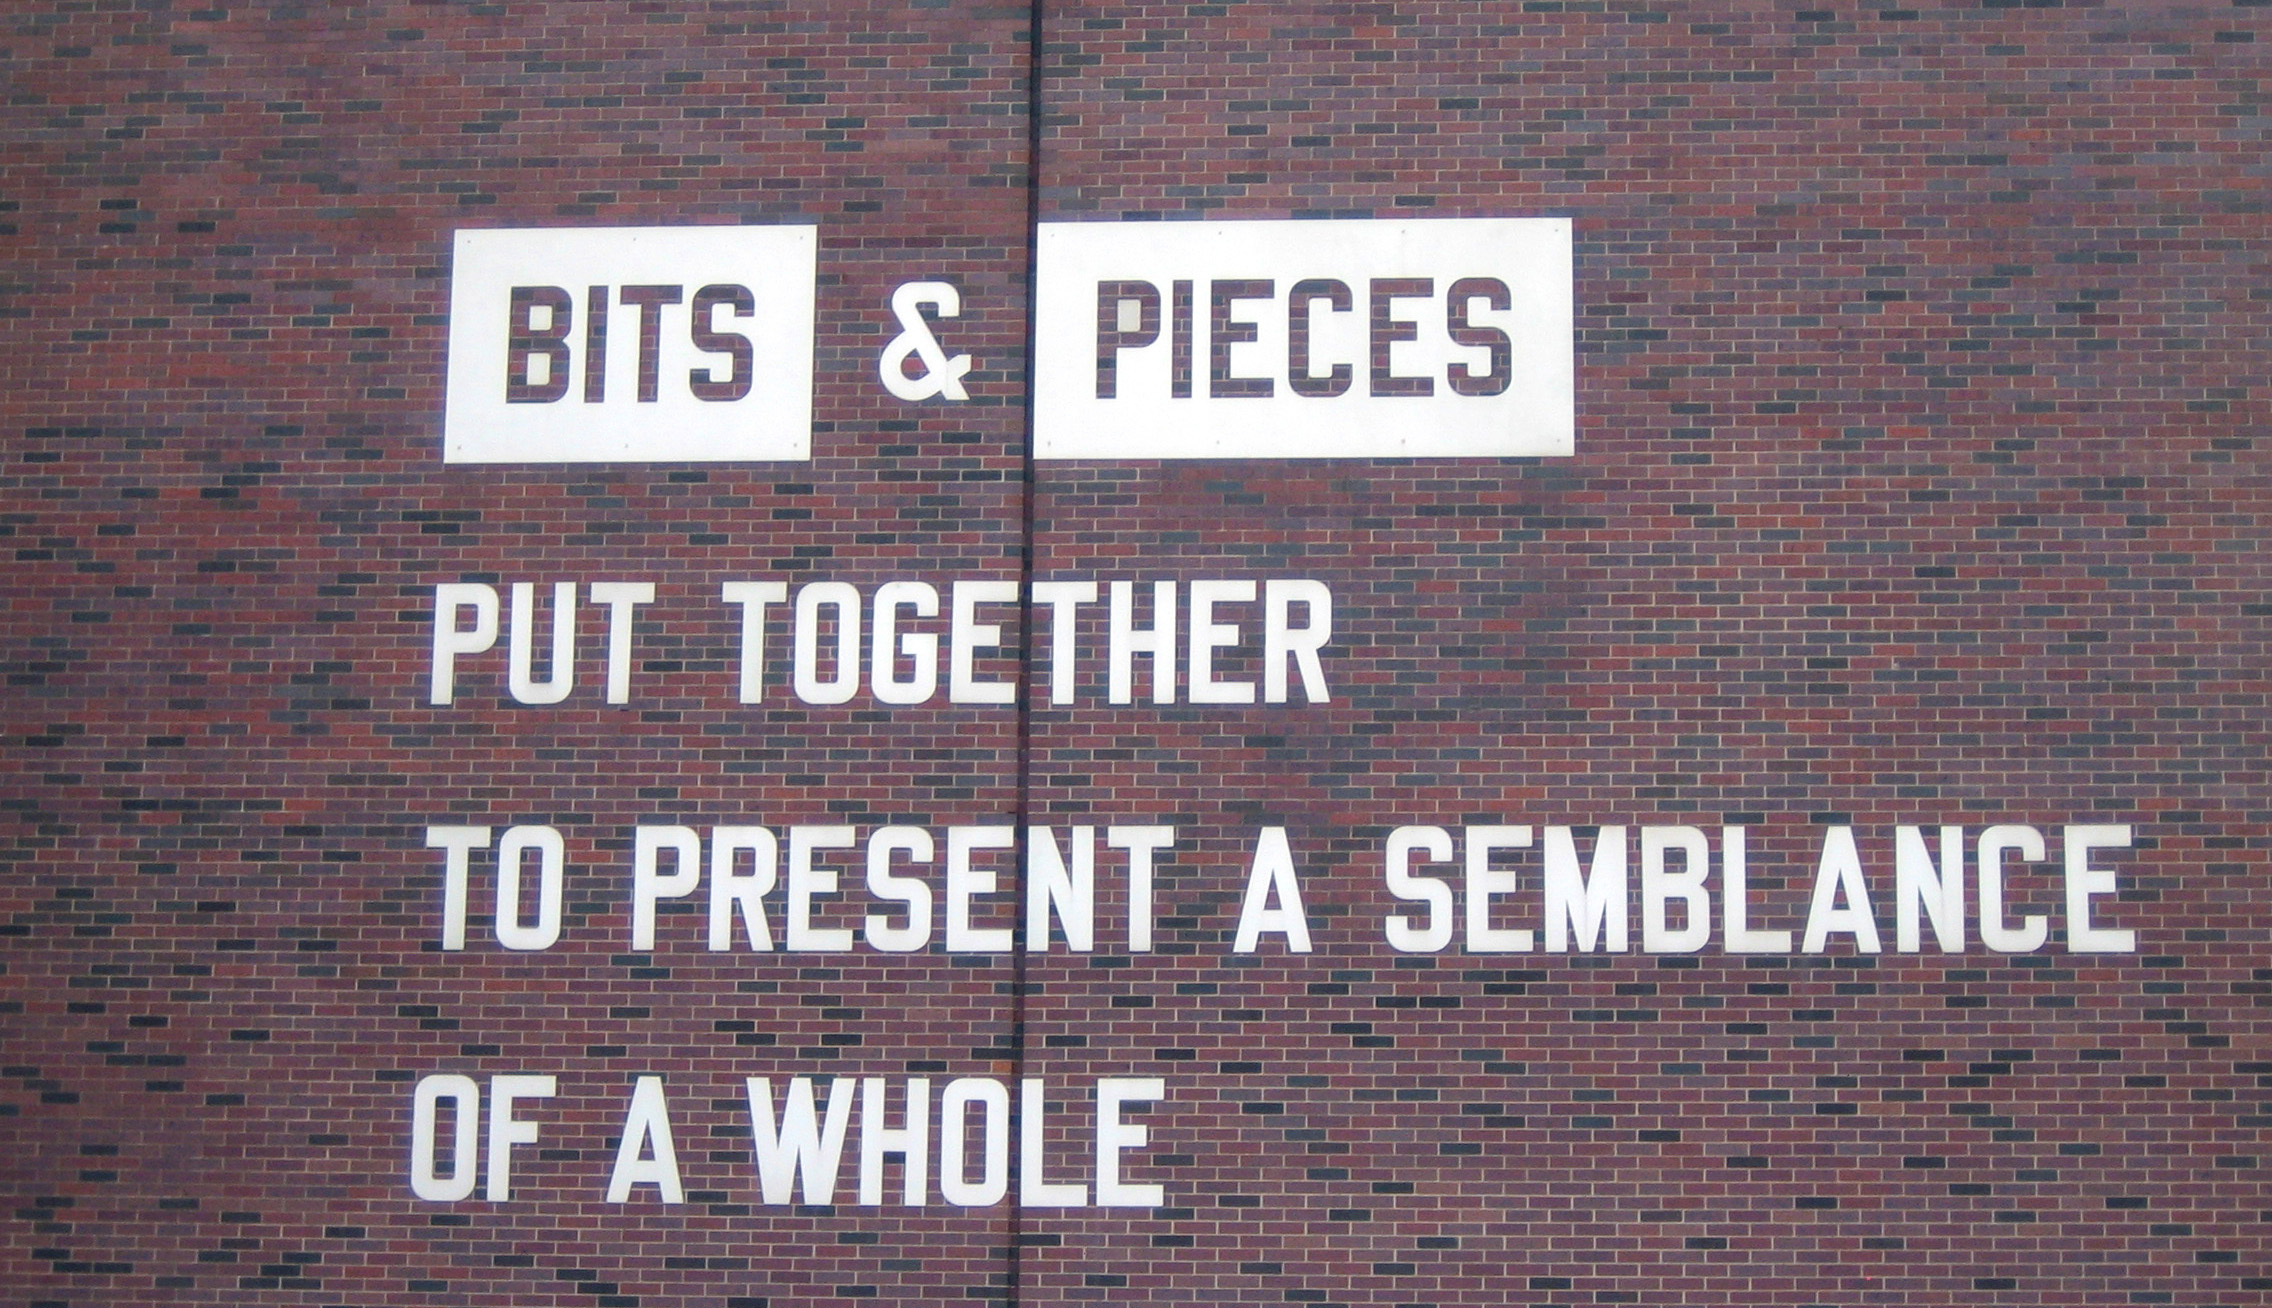 """Brick wall with painted letters that read """"Bits & Pieces put together to present a semblance of a whole."""""""